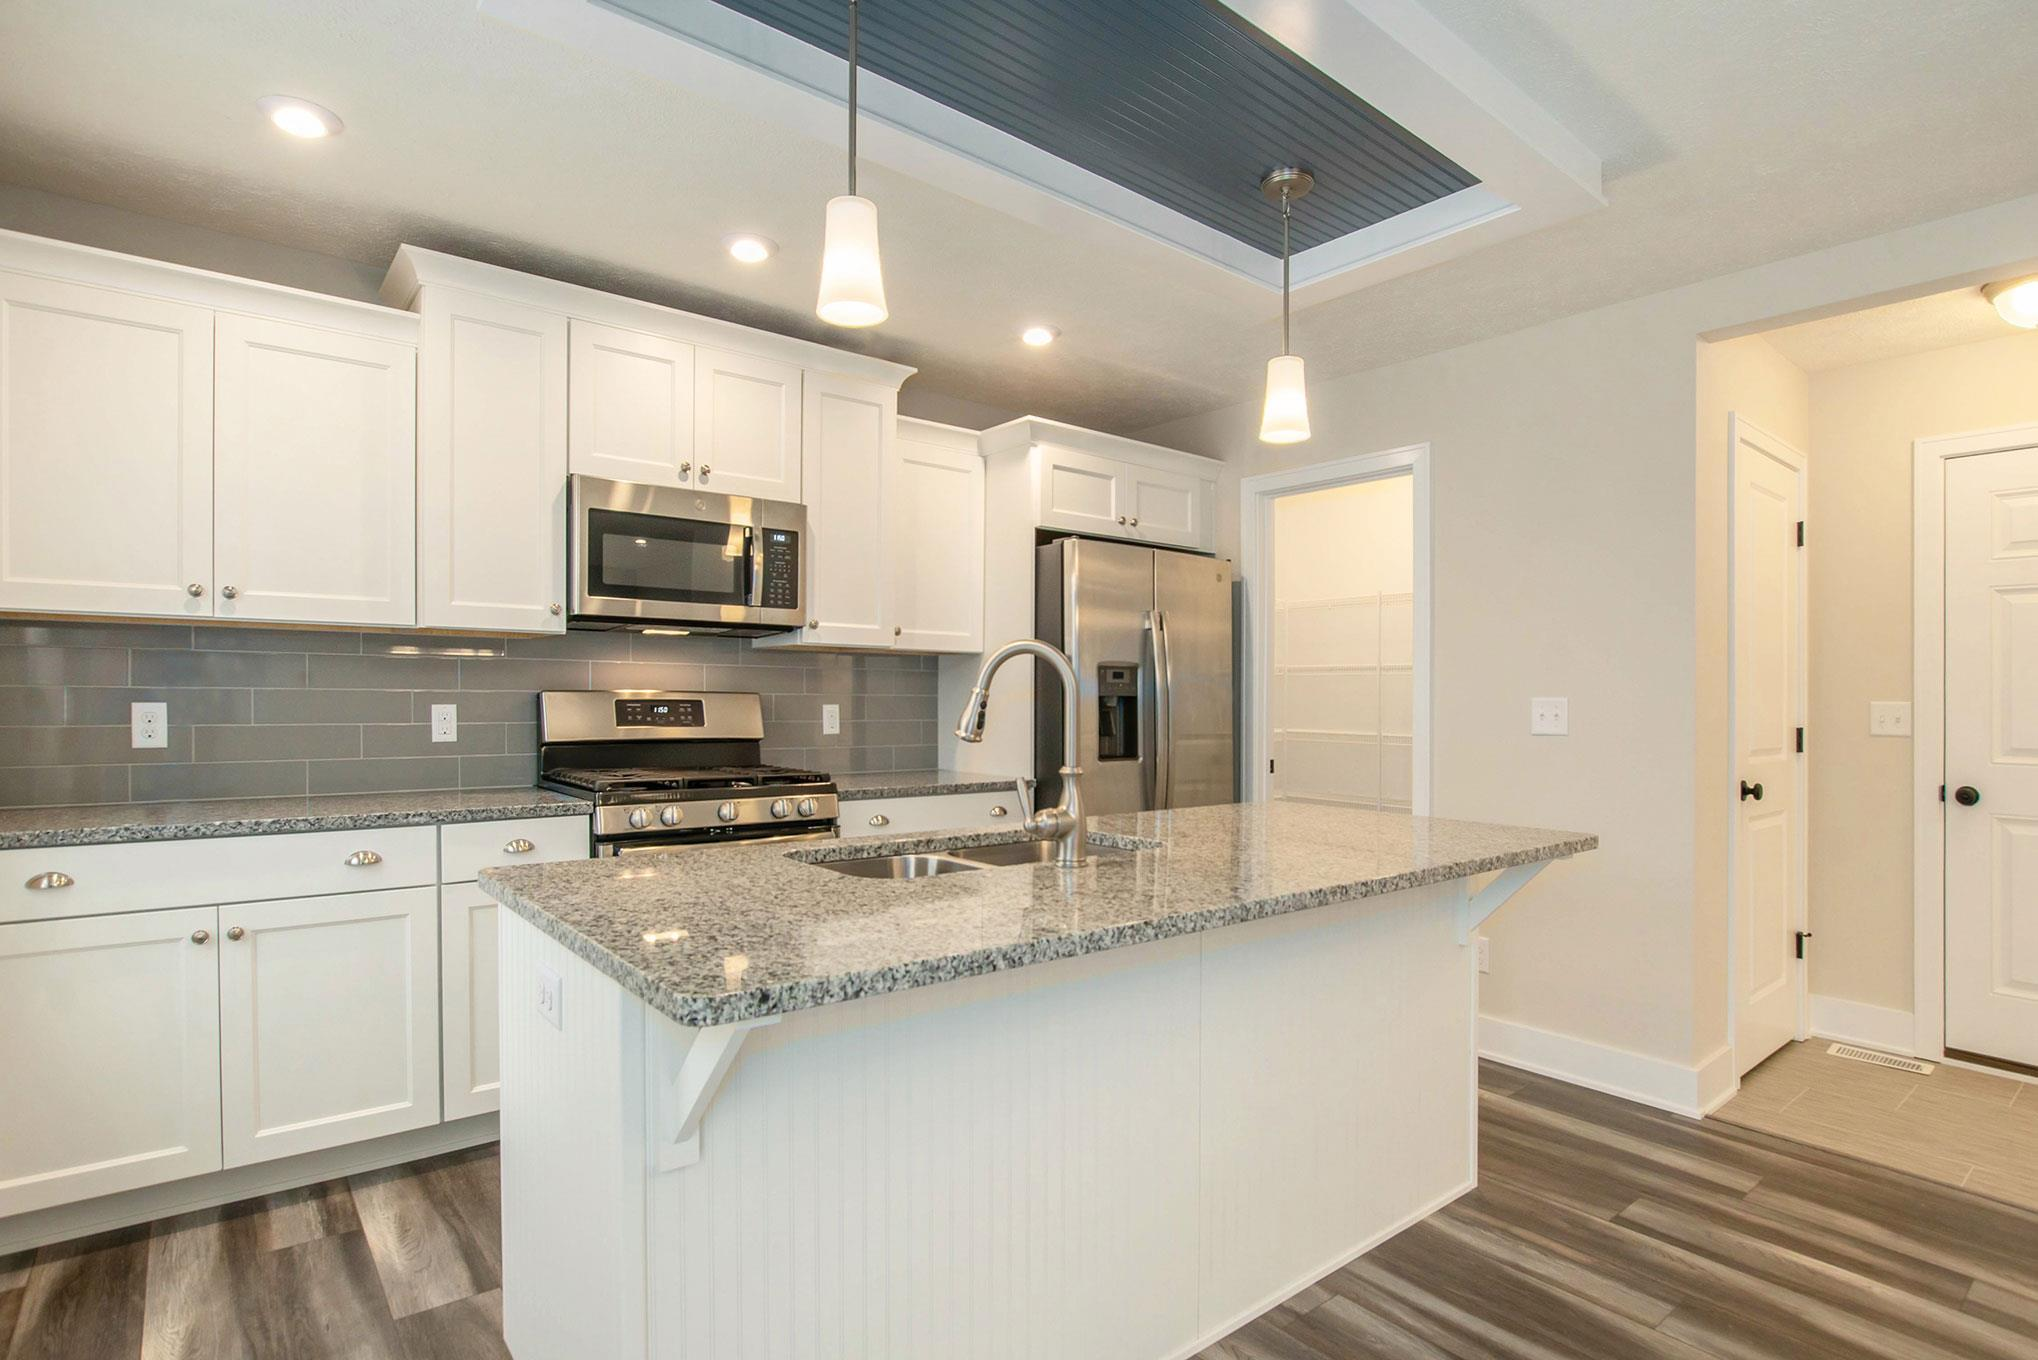 Kitchen featured in The Rowen By Eastbrook Homes Inc. in Lansing, MI